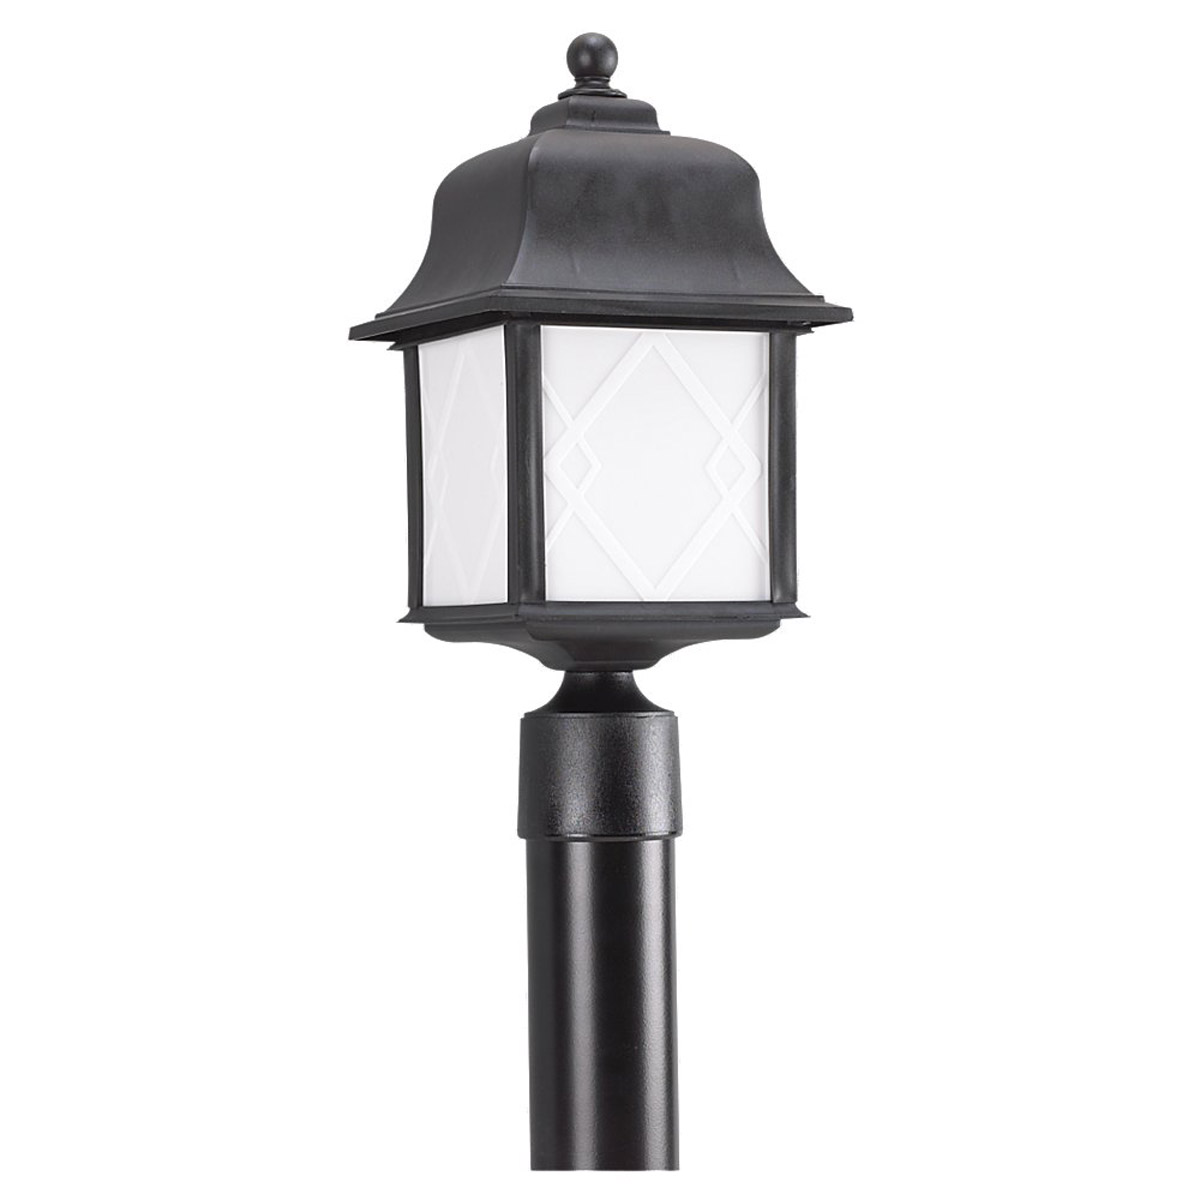 Sea Gull Lighting Harbor Point 1 Light Post Lantern in Black 82192BL-12 photo